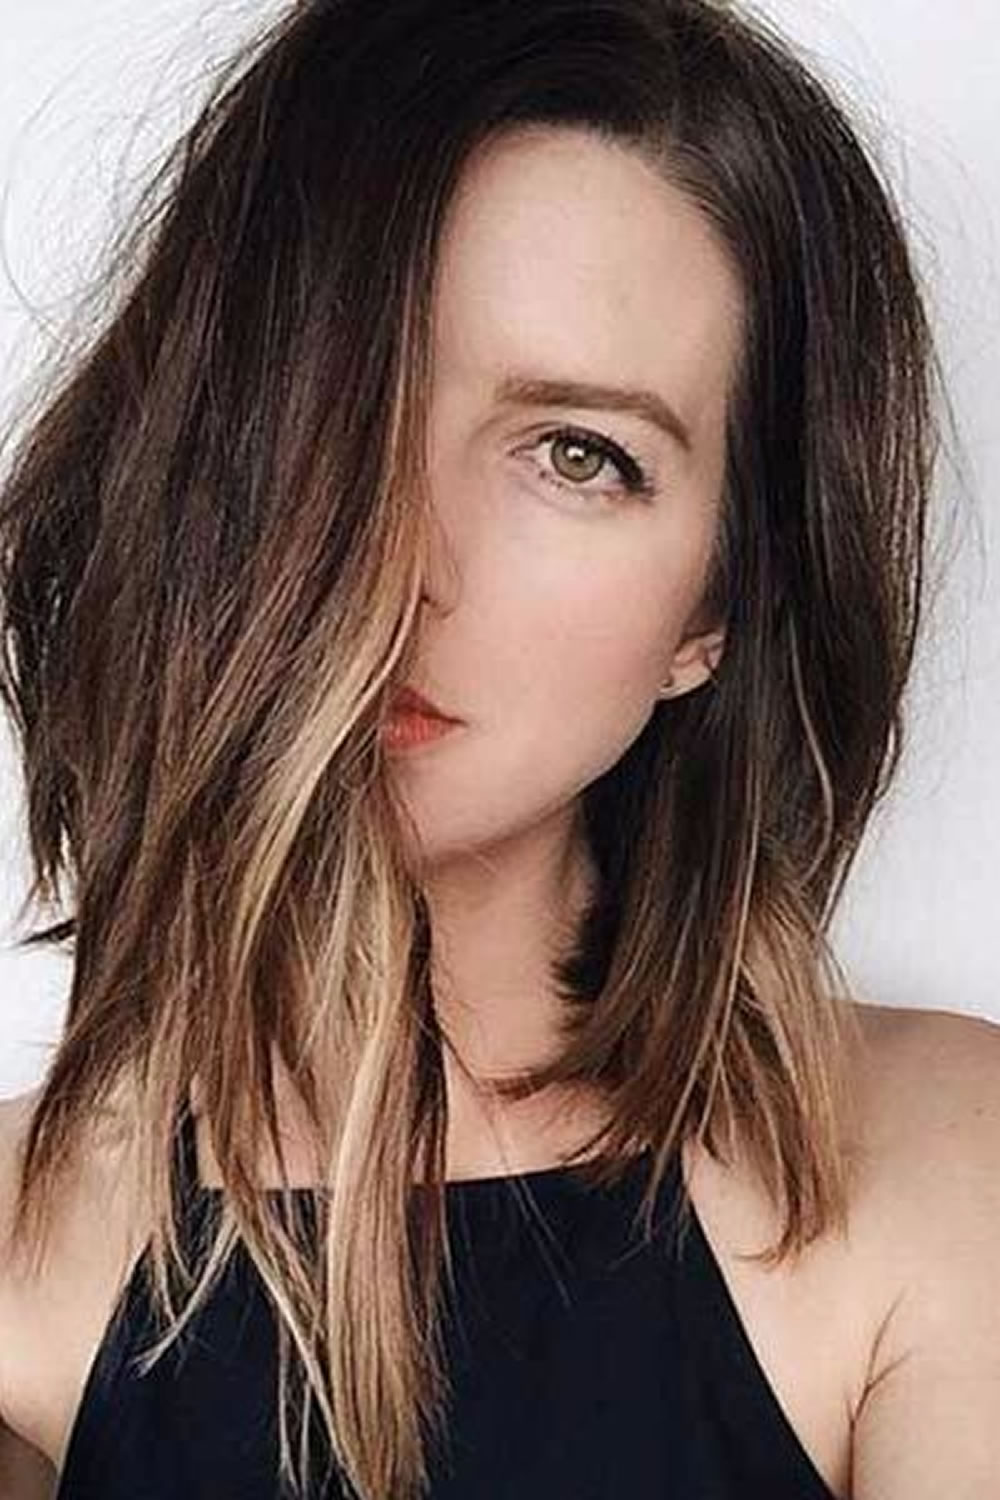 Asymmetrical Long Bob Hairstyles 2019 Are At The Forefront Of Trendy